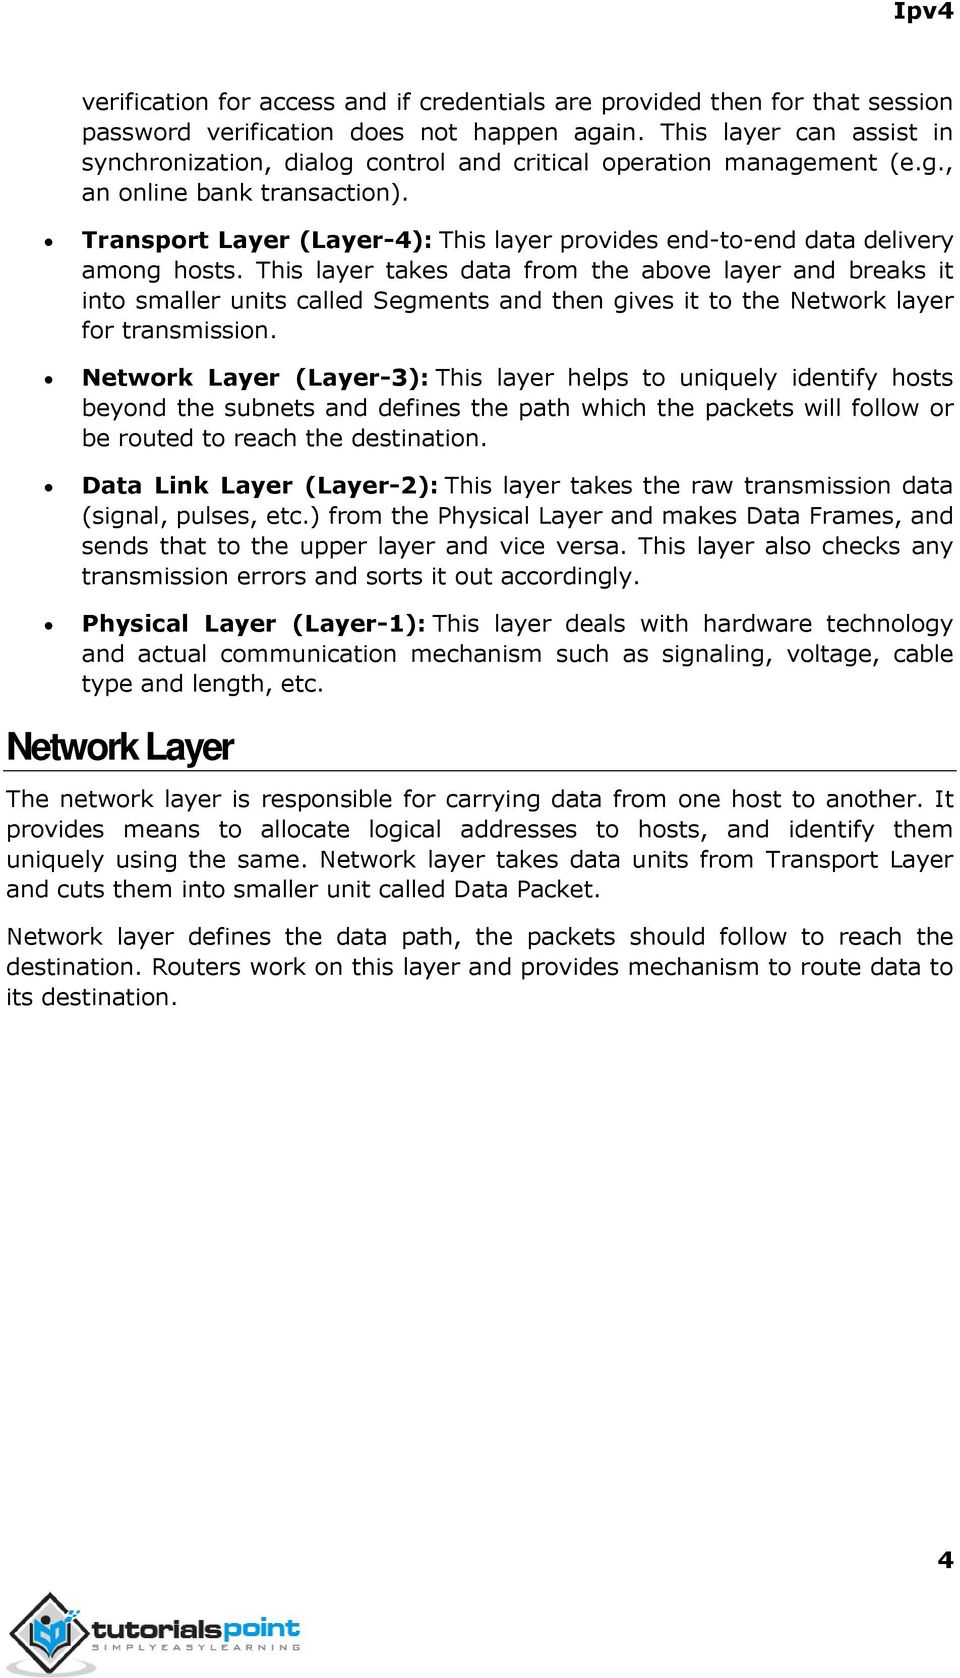 Transport Layer (Layer-4): This layer provides end-to-end data delivery among hosts.